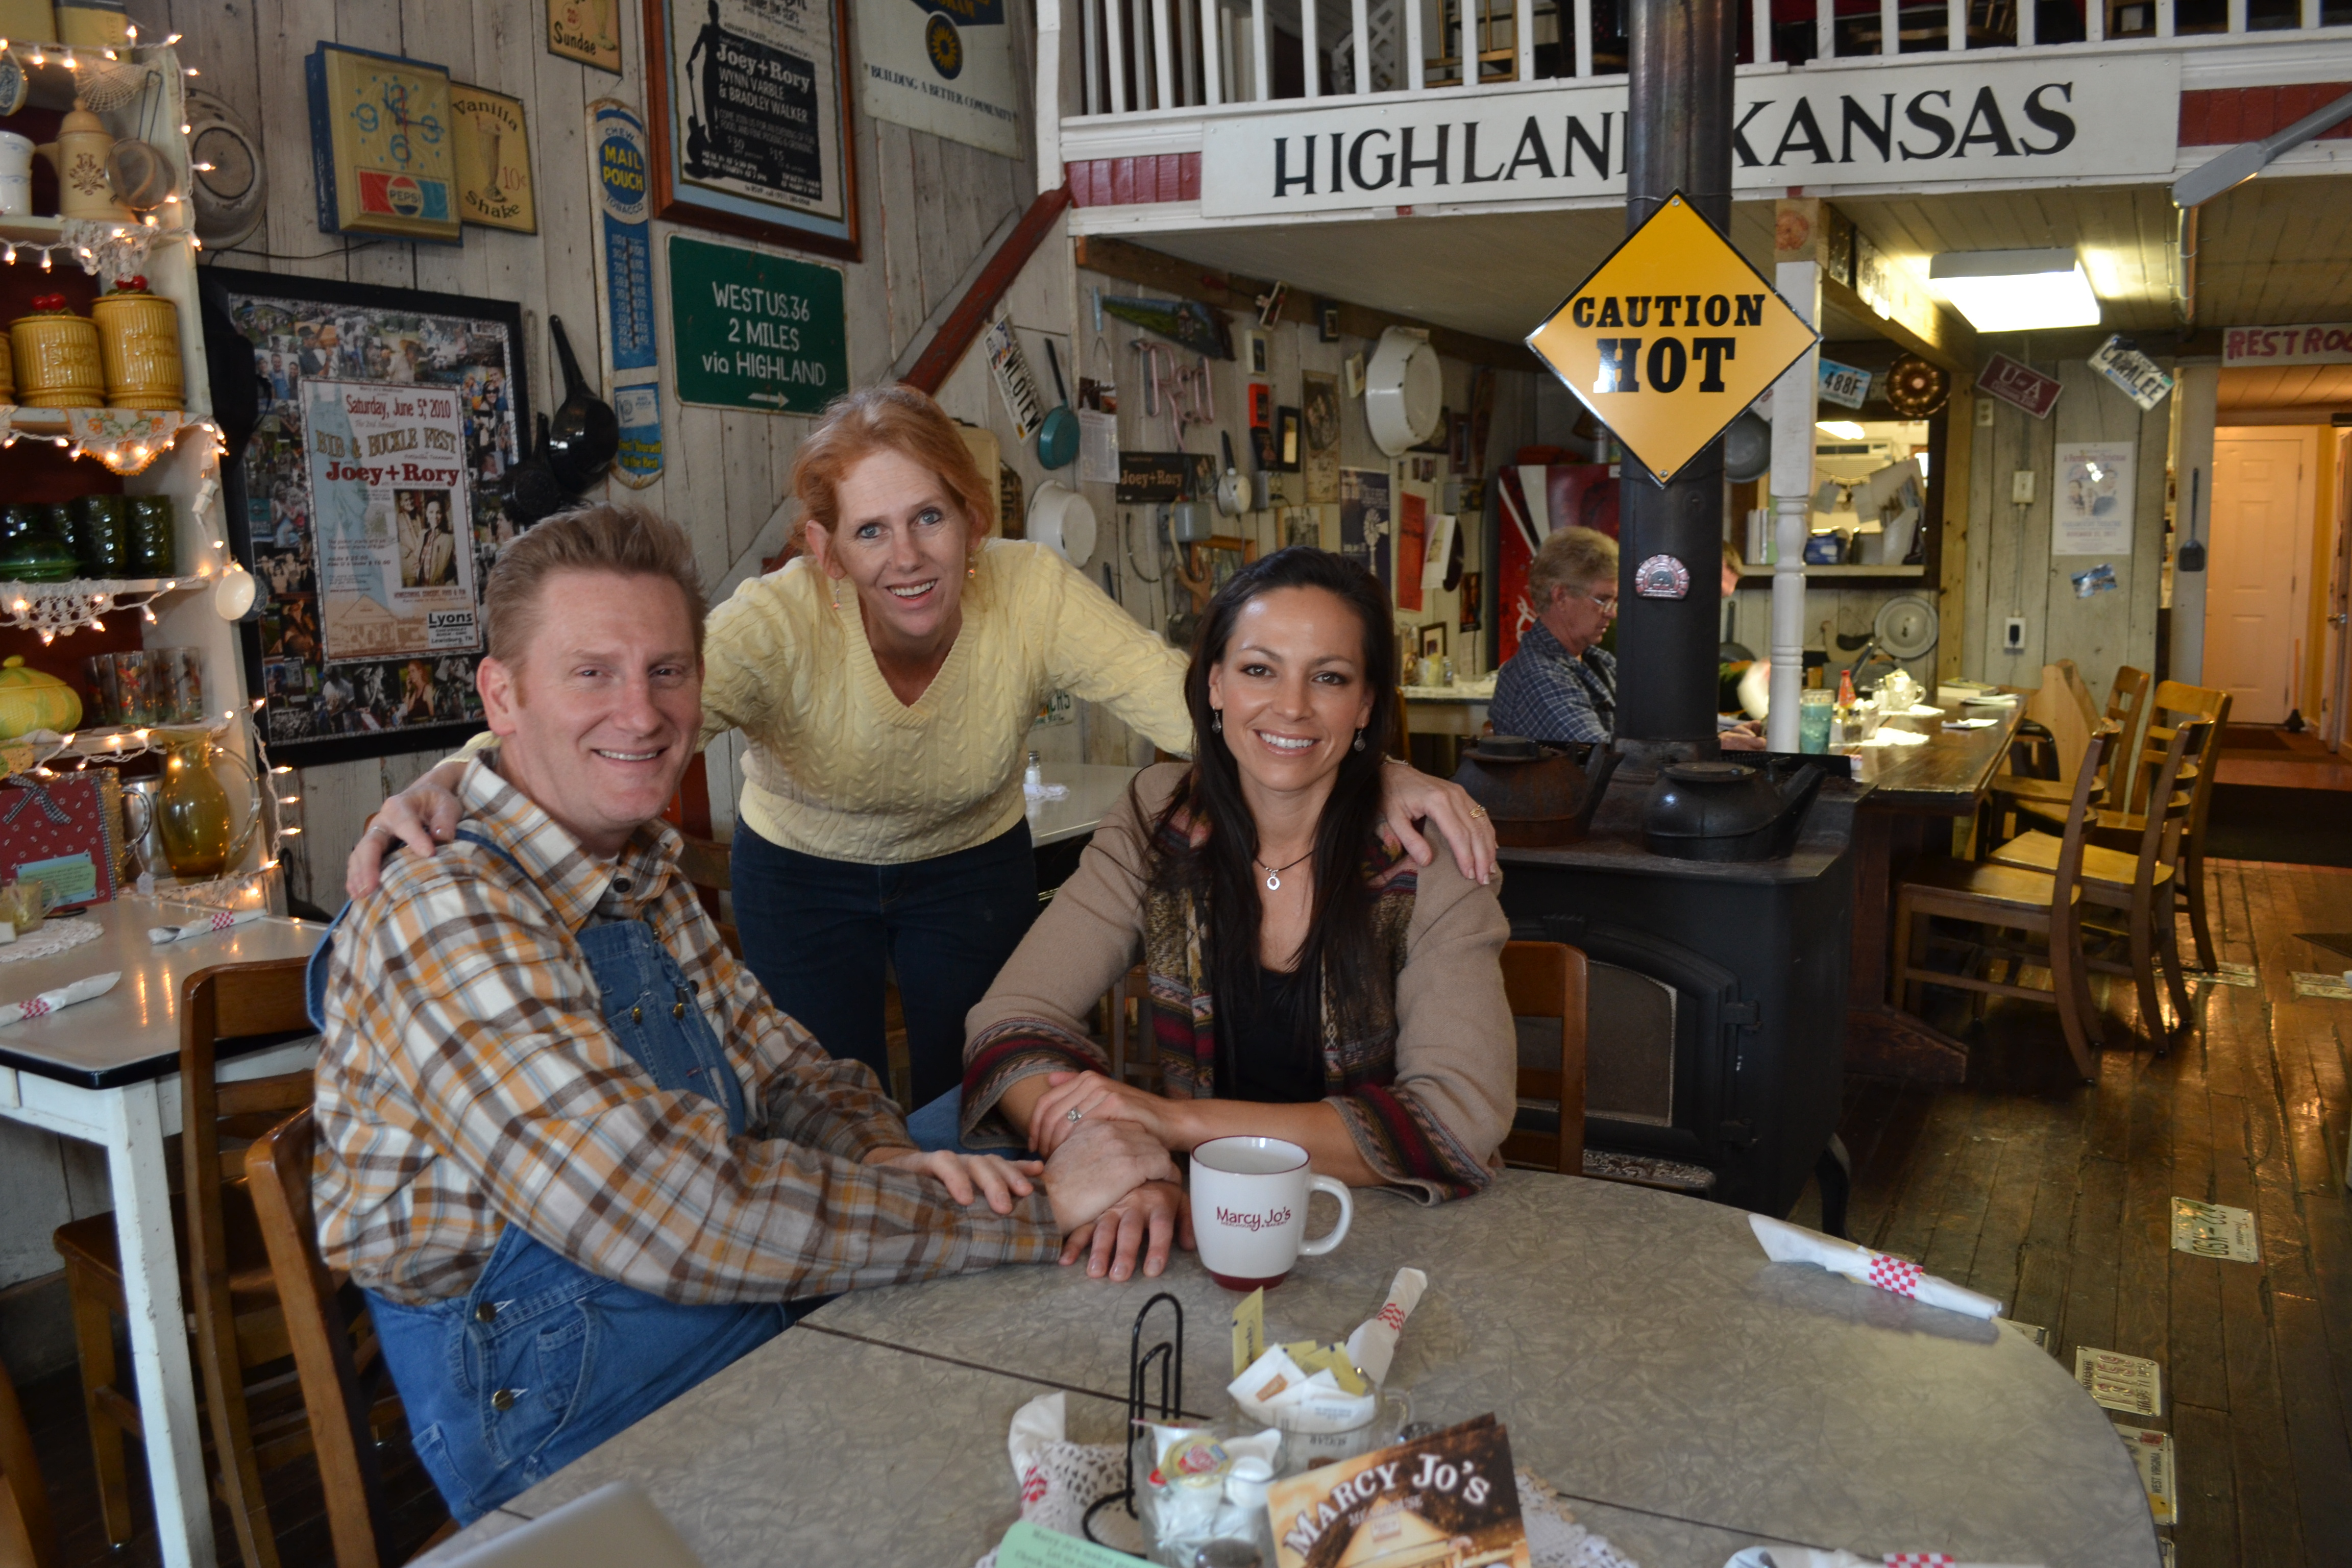 Rory Feek, Marcy Gary and Joey Martin gather at Marcy Jo's Mealhouse.